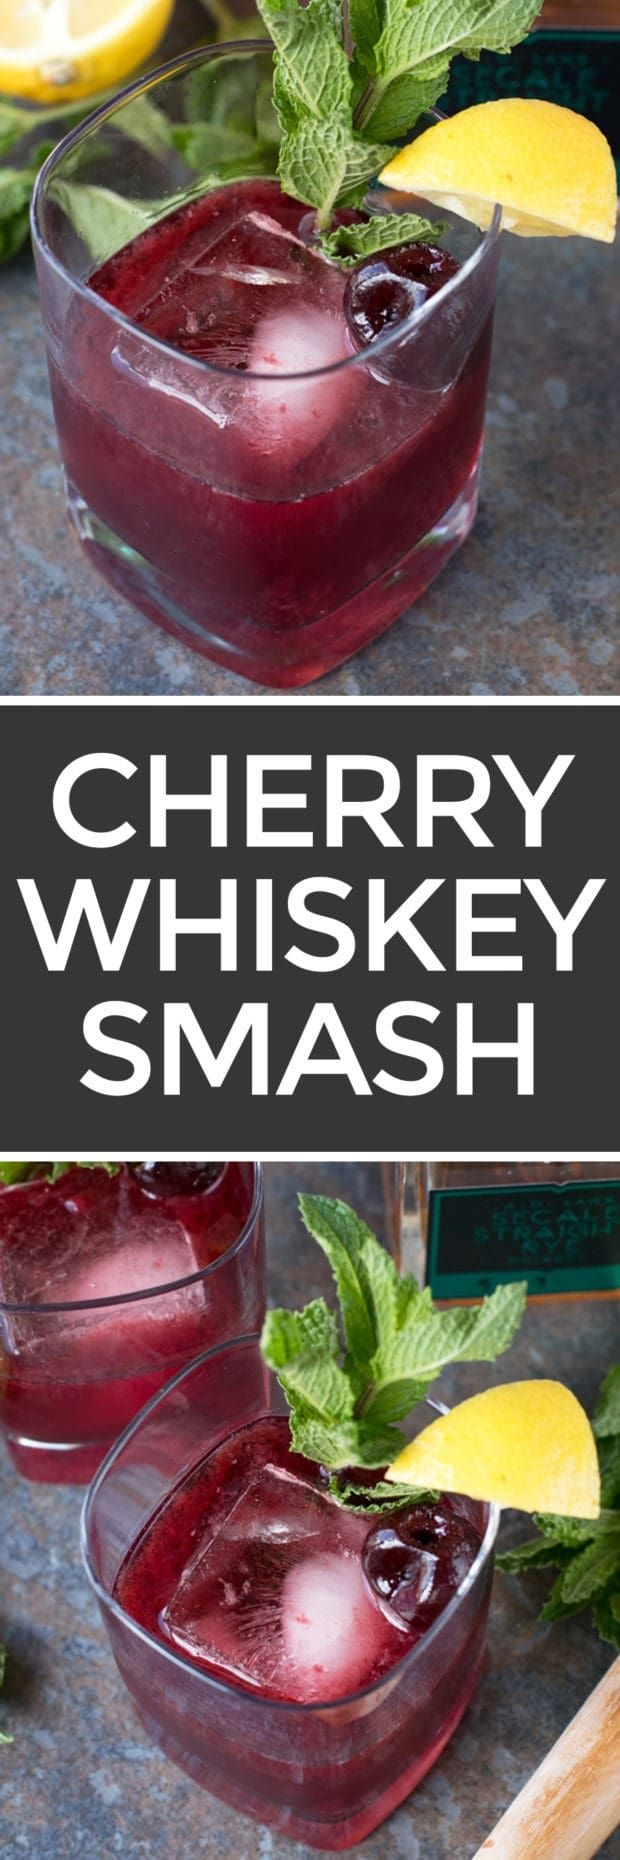 I've got your new favorite ladies night cocktail right here, gals! A Cherry Whiskey Smash is the fresh and fruity, spirit-forward cocktail your summer sippin' agenda is begging for. Cherry Whiskey Smash   cakenknife.com #cocktail